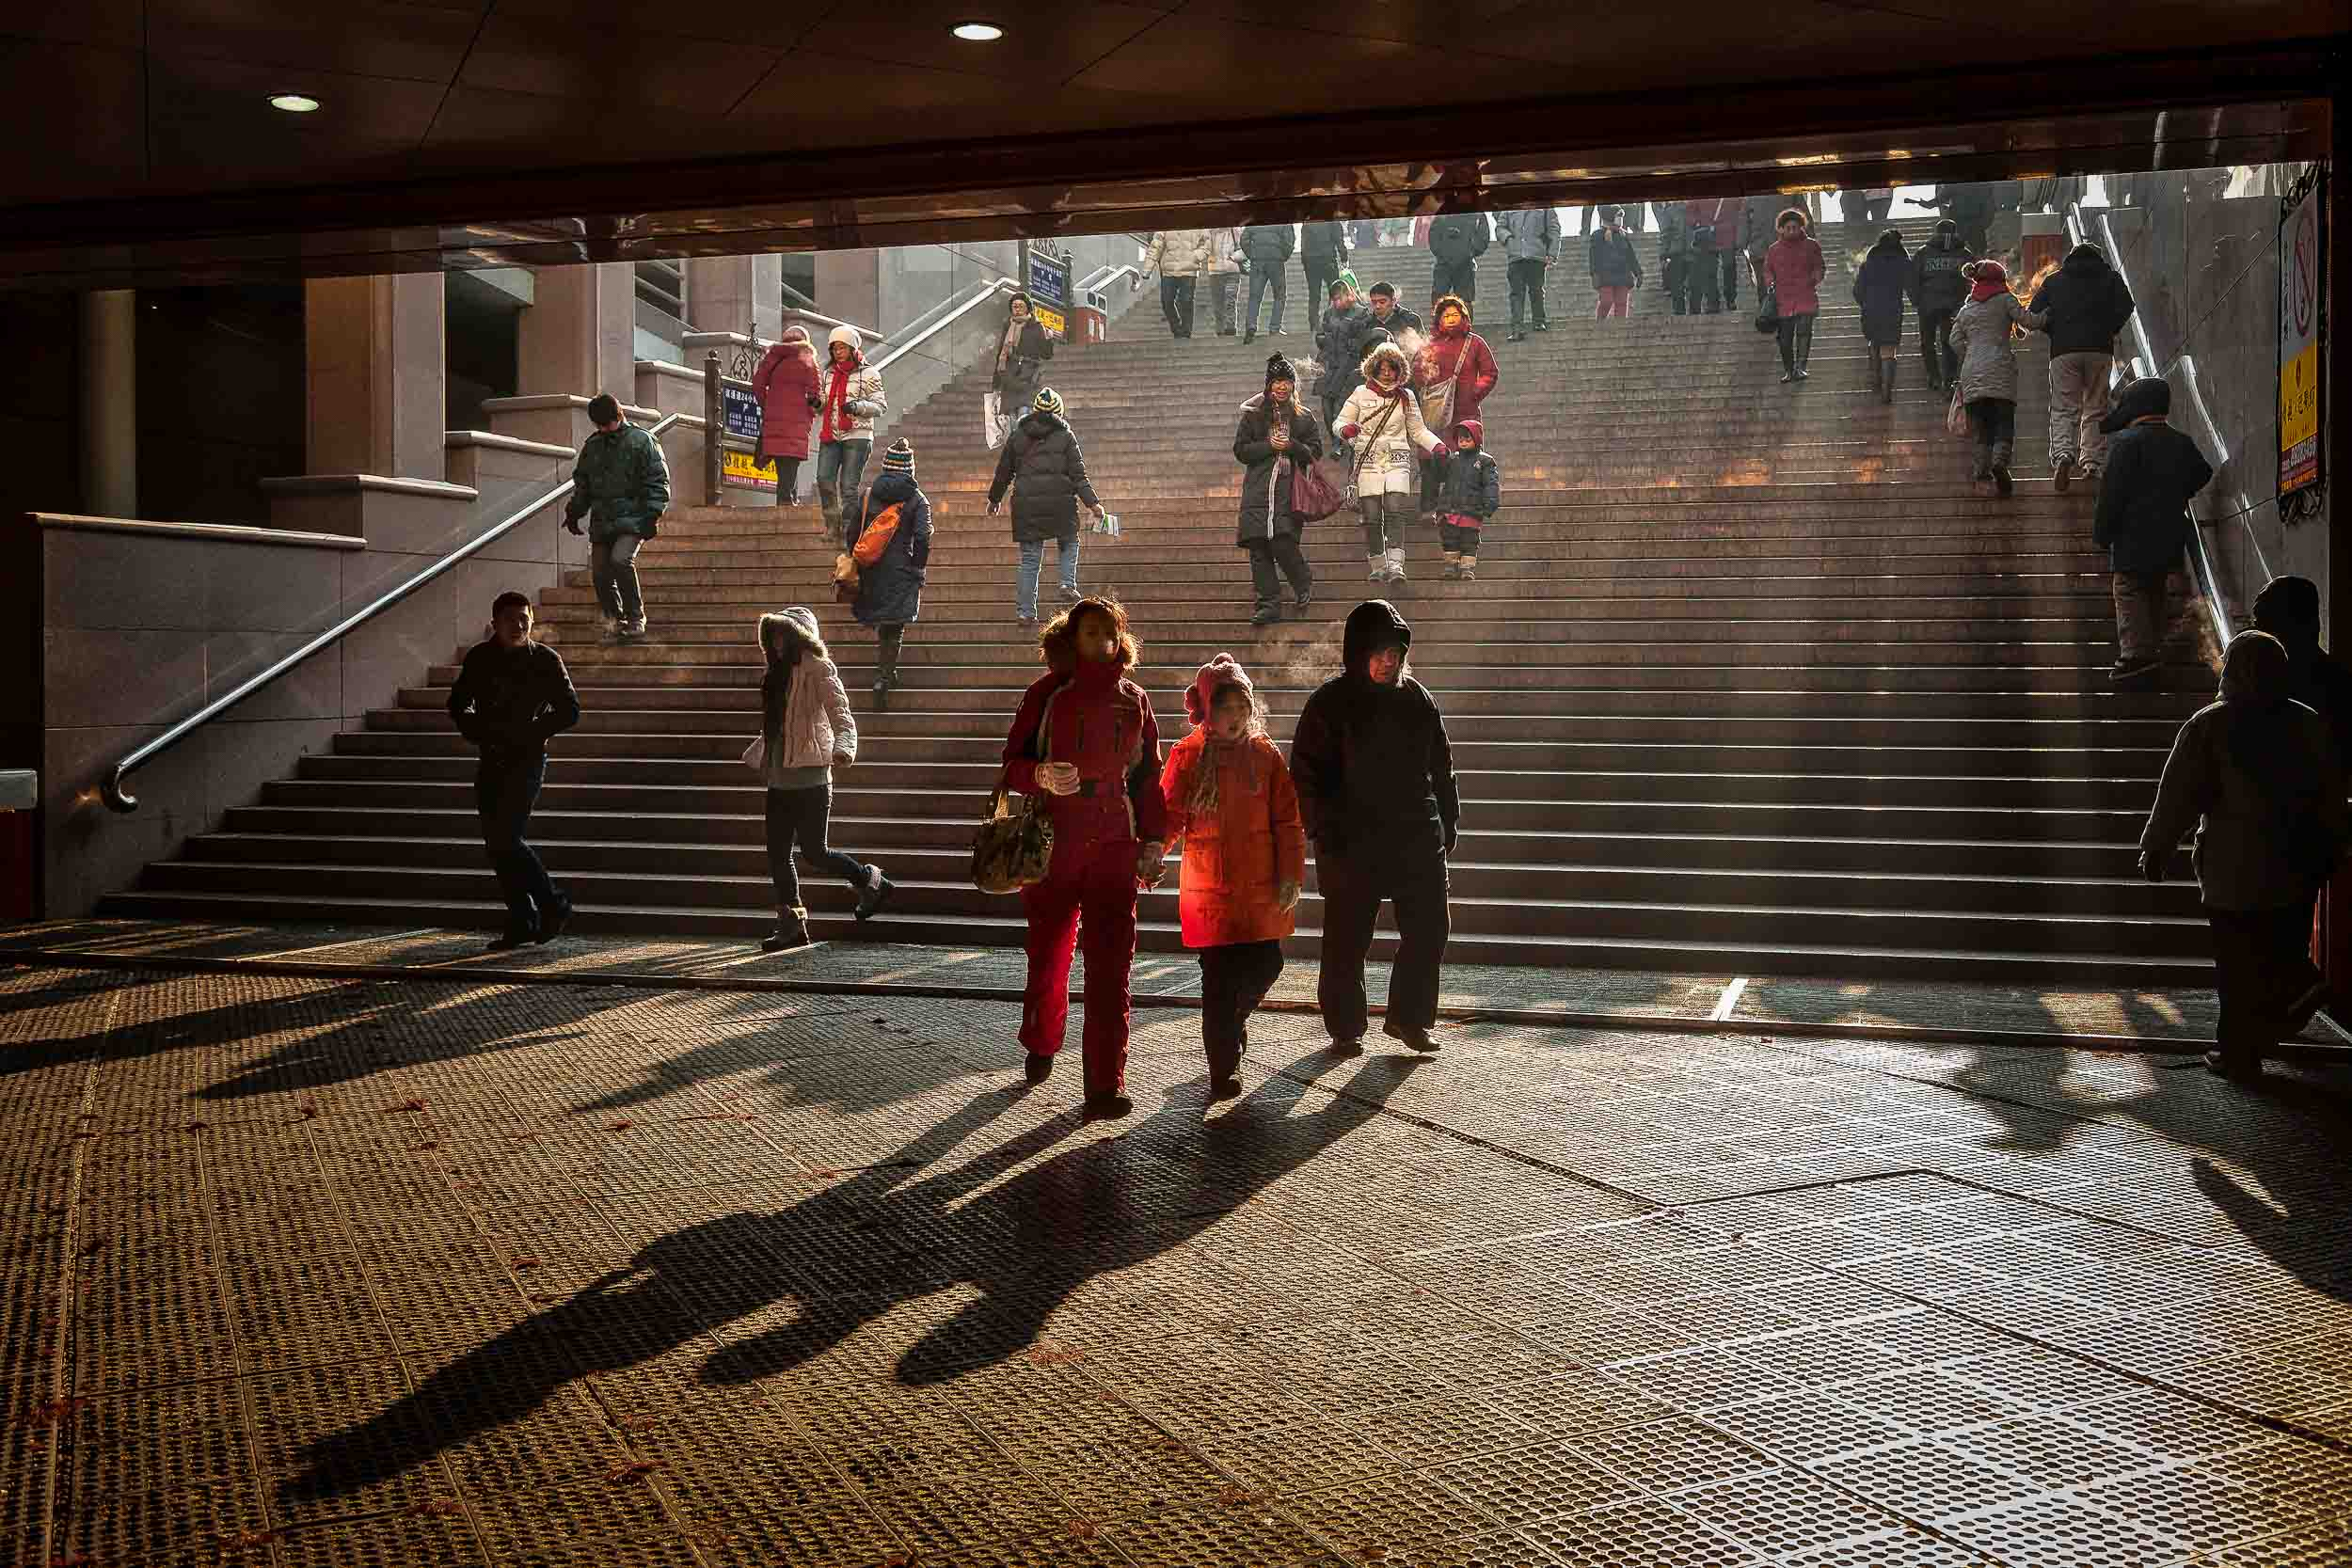 A family make their way into a subway on a    cold winter's day    in    Harbin, China   . China holidays provide so many glimpses into the Human Condition.